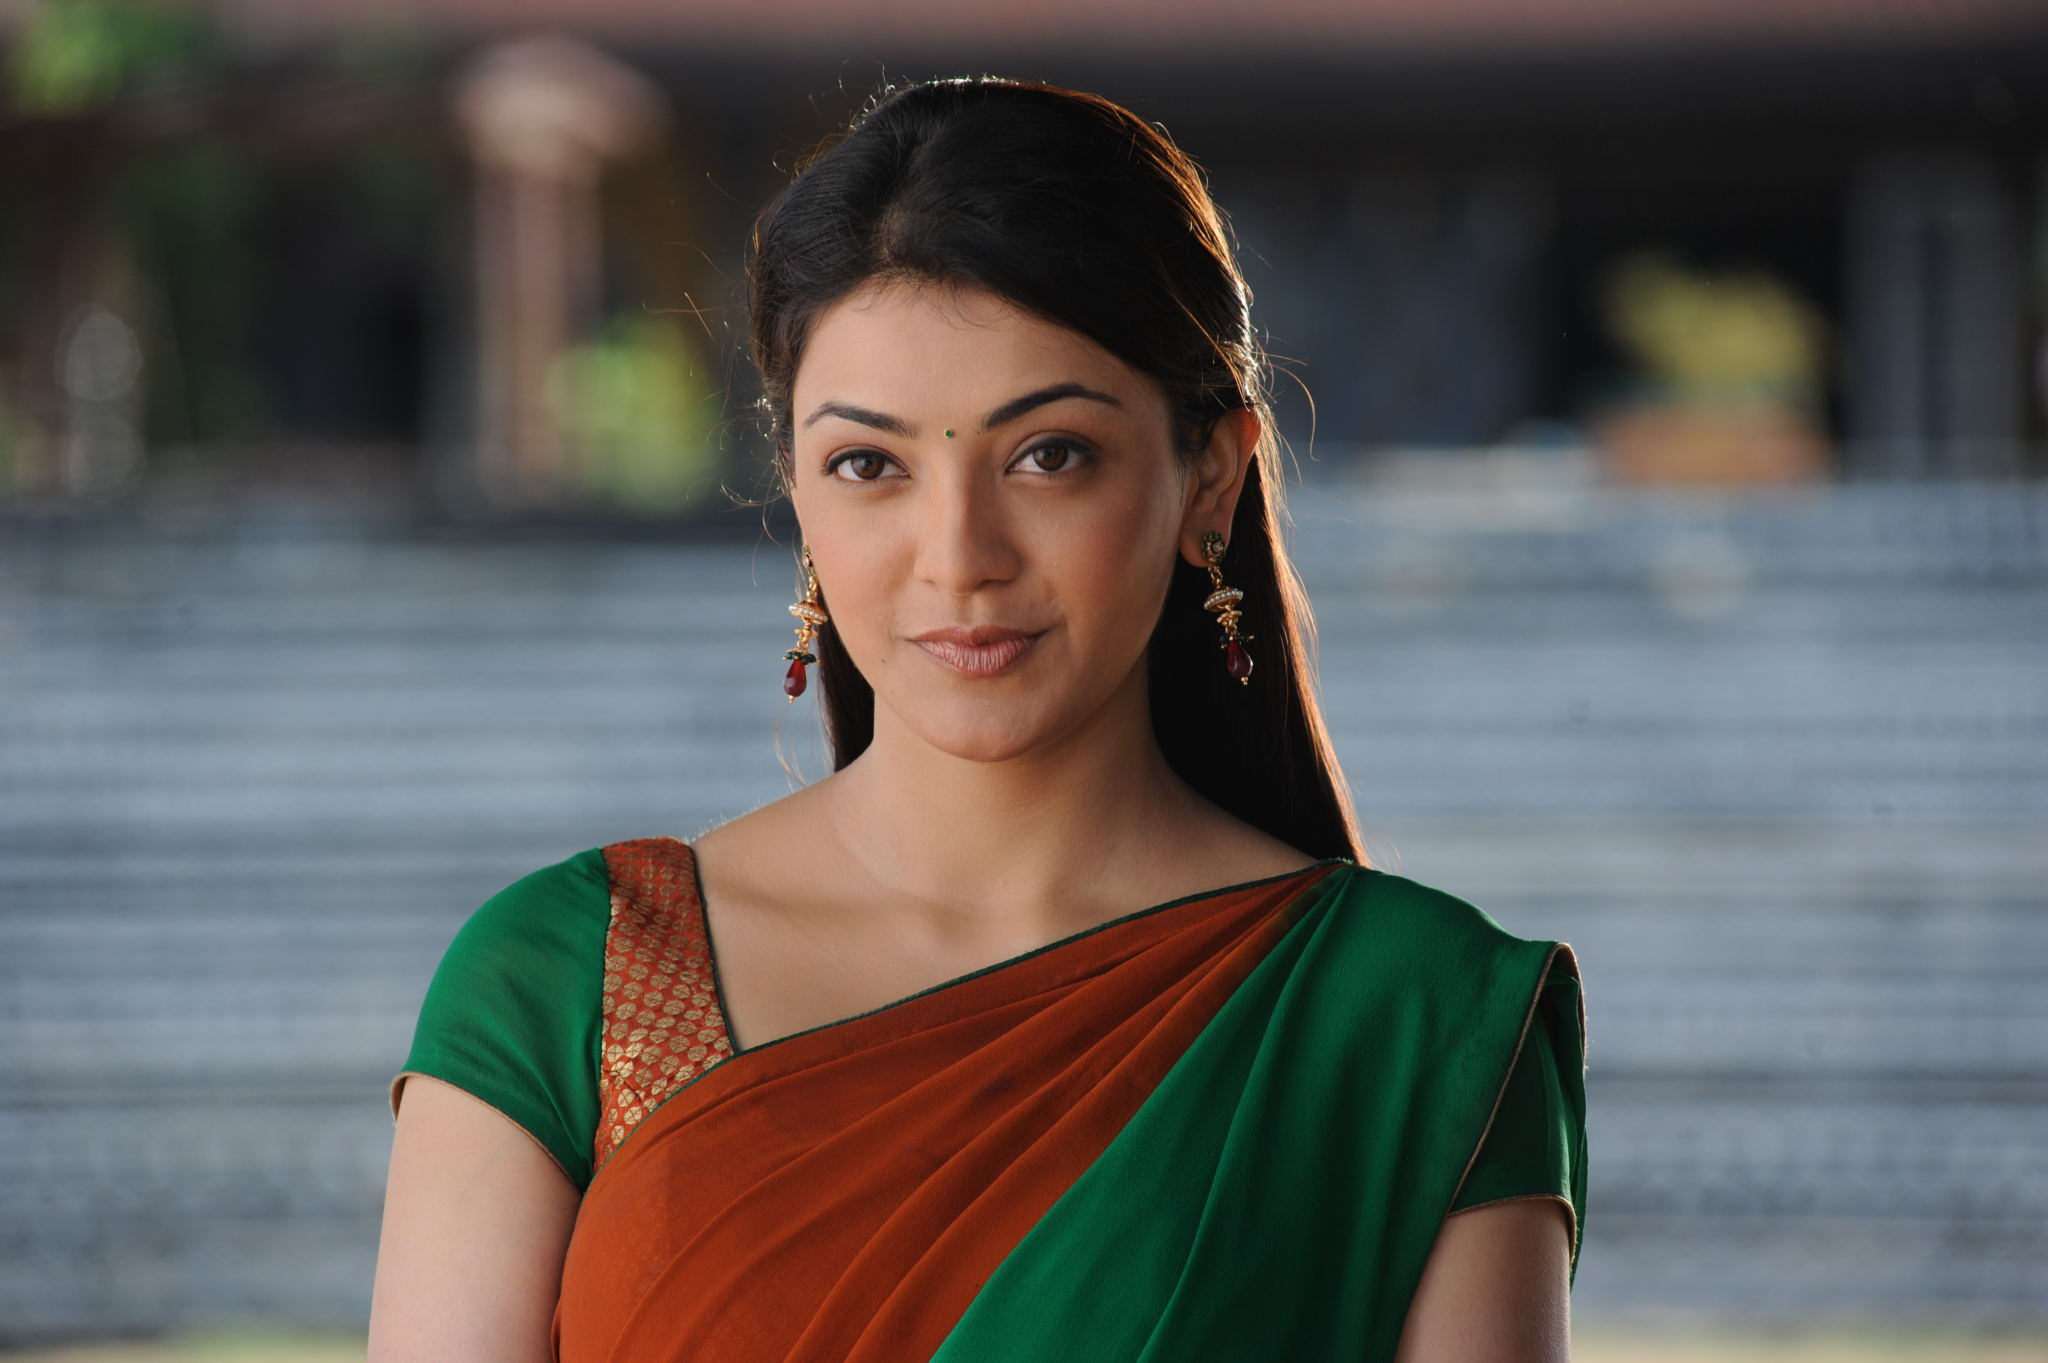 Wallpaper download kajal agarwal - Kajal Agarwal Background